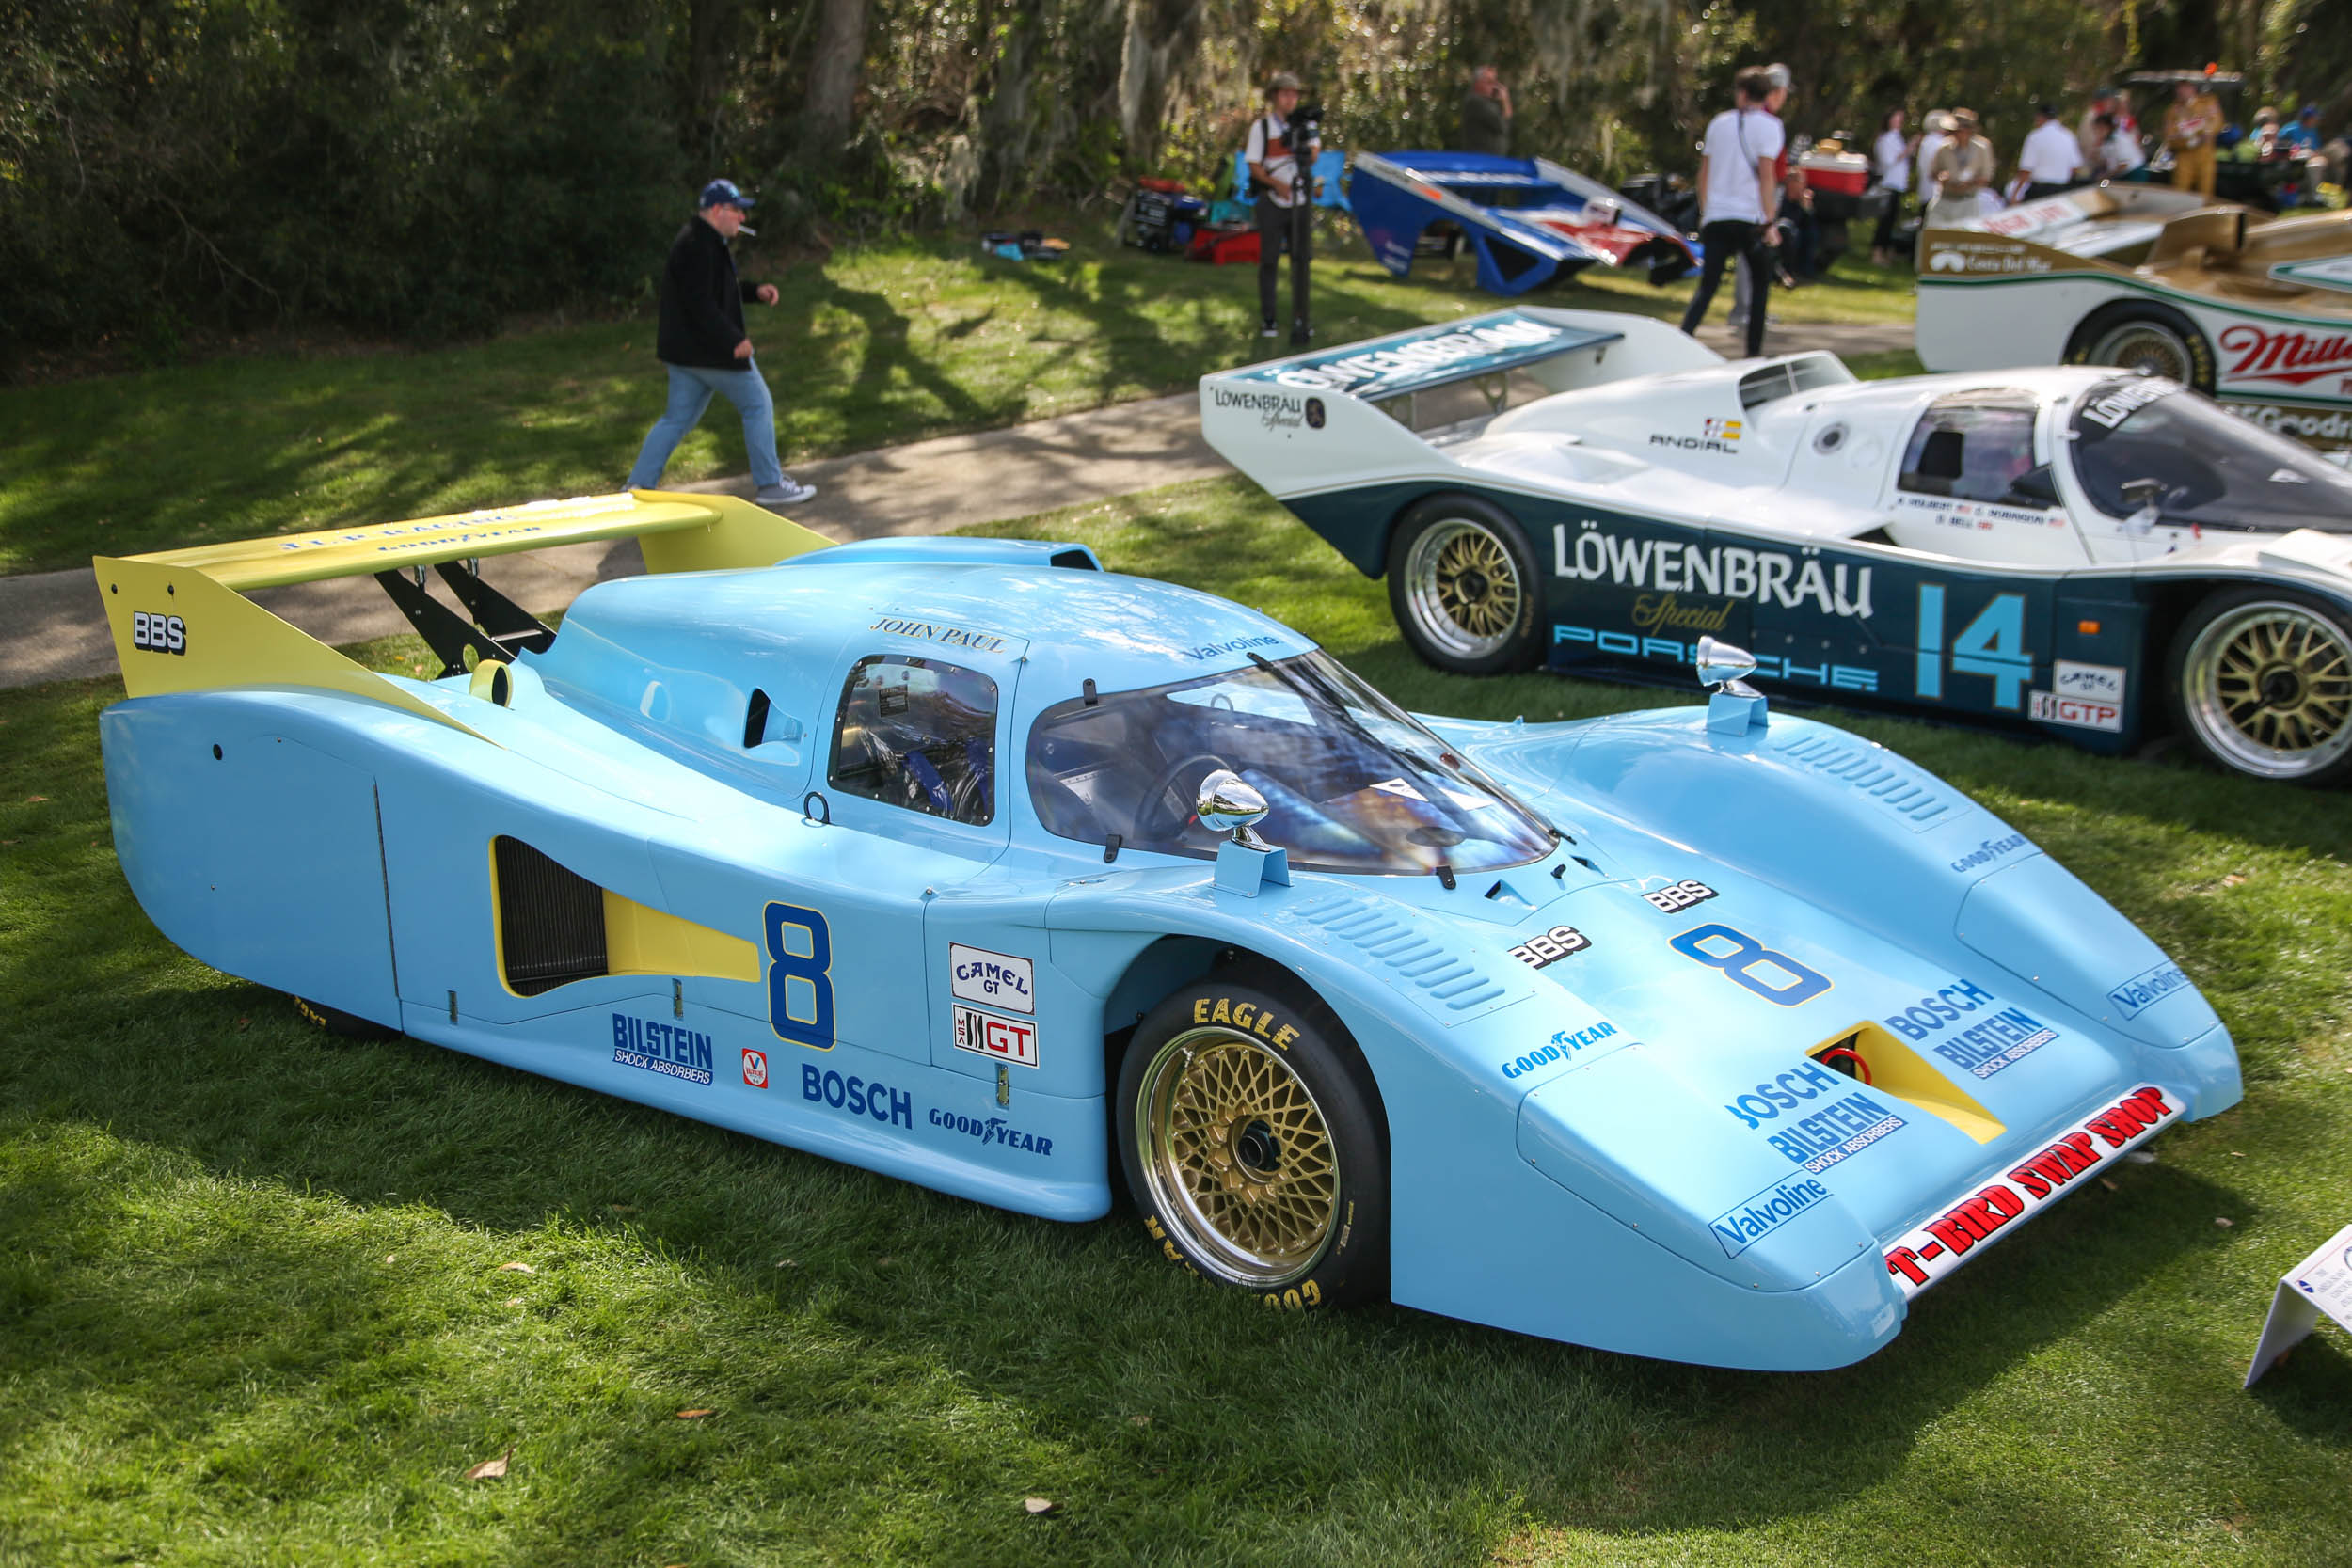 race cars at the 2018 Amelia Island concours